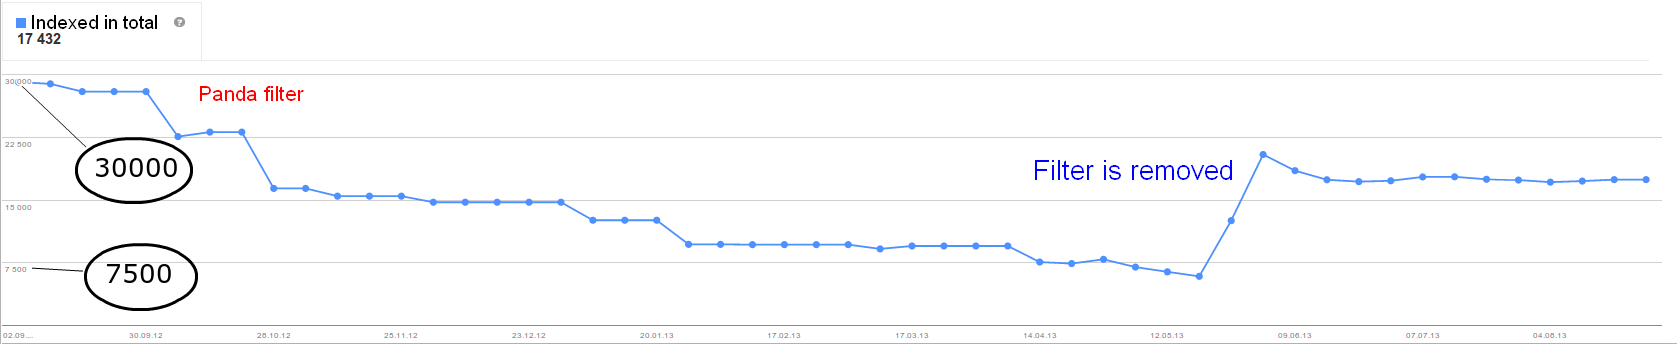 Site traffic after Google's filter